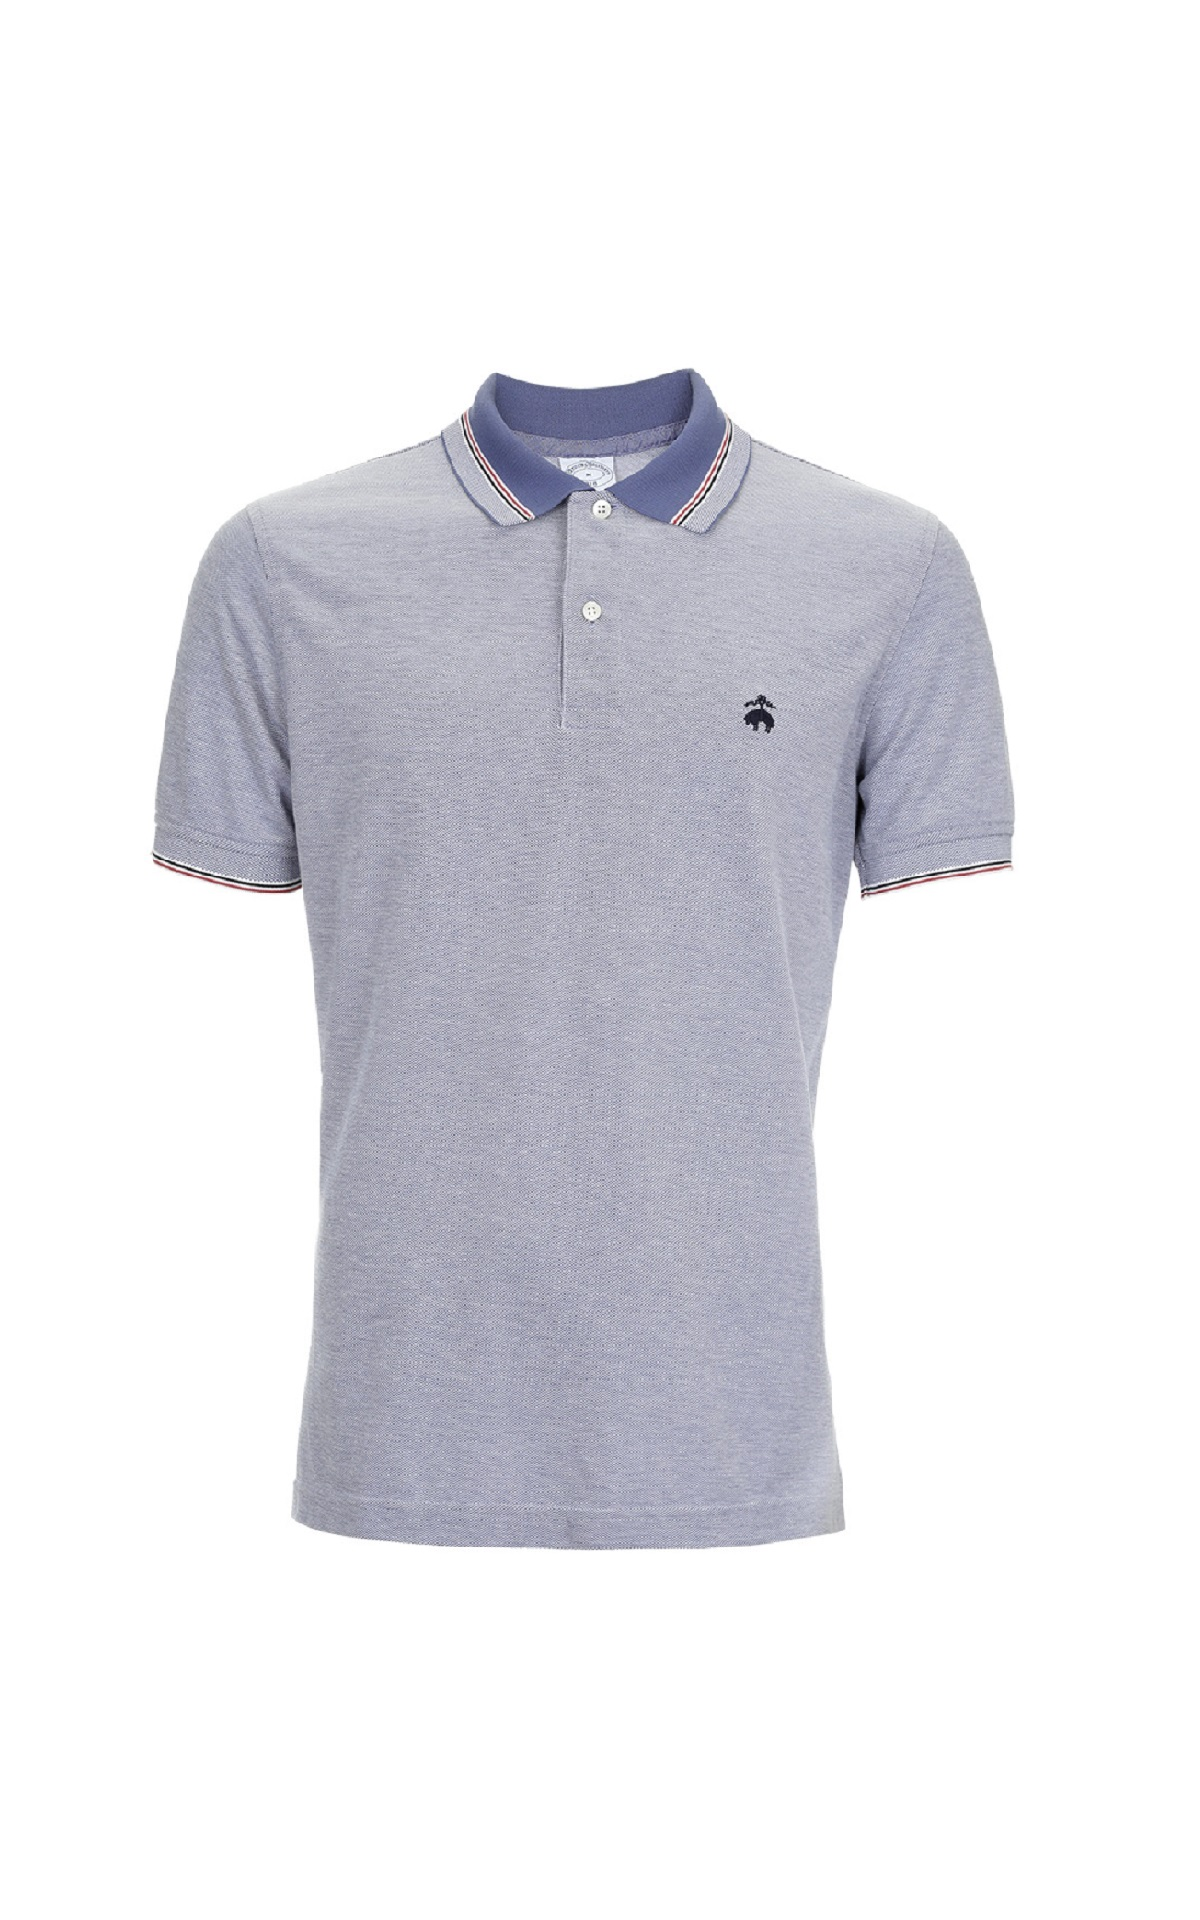 Blue Supima cotton S/S Polo shirt for man Brooks Brothers